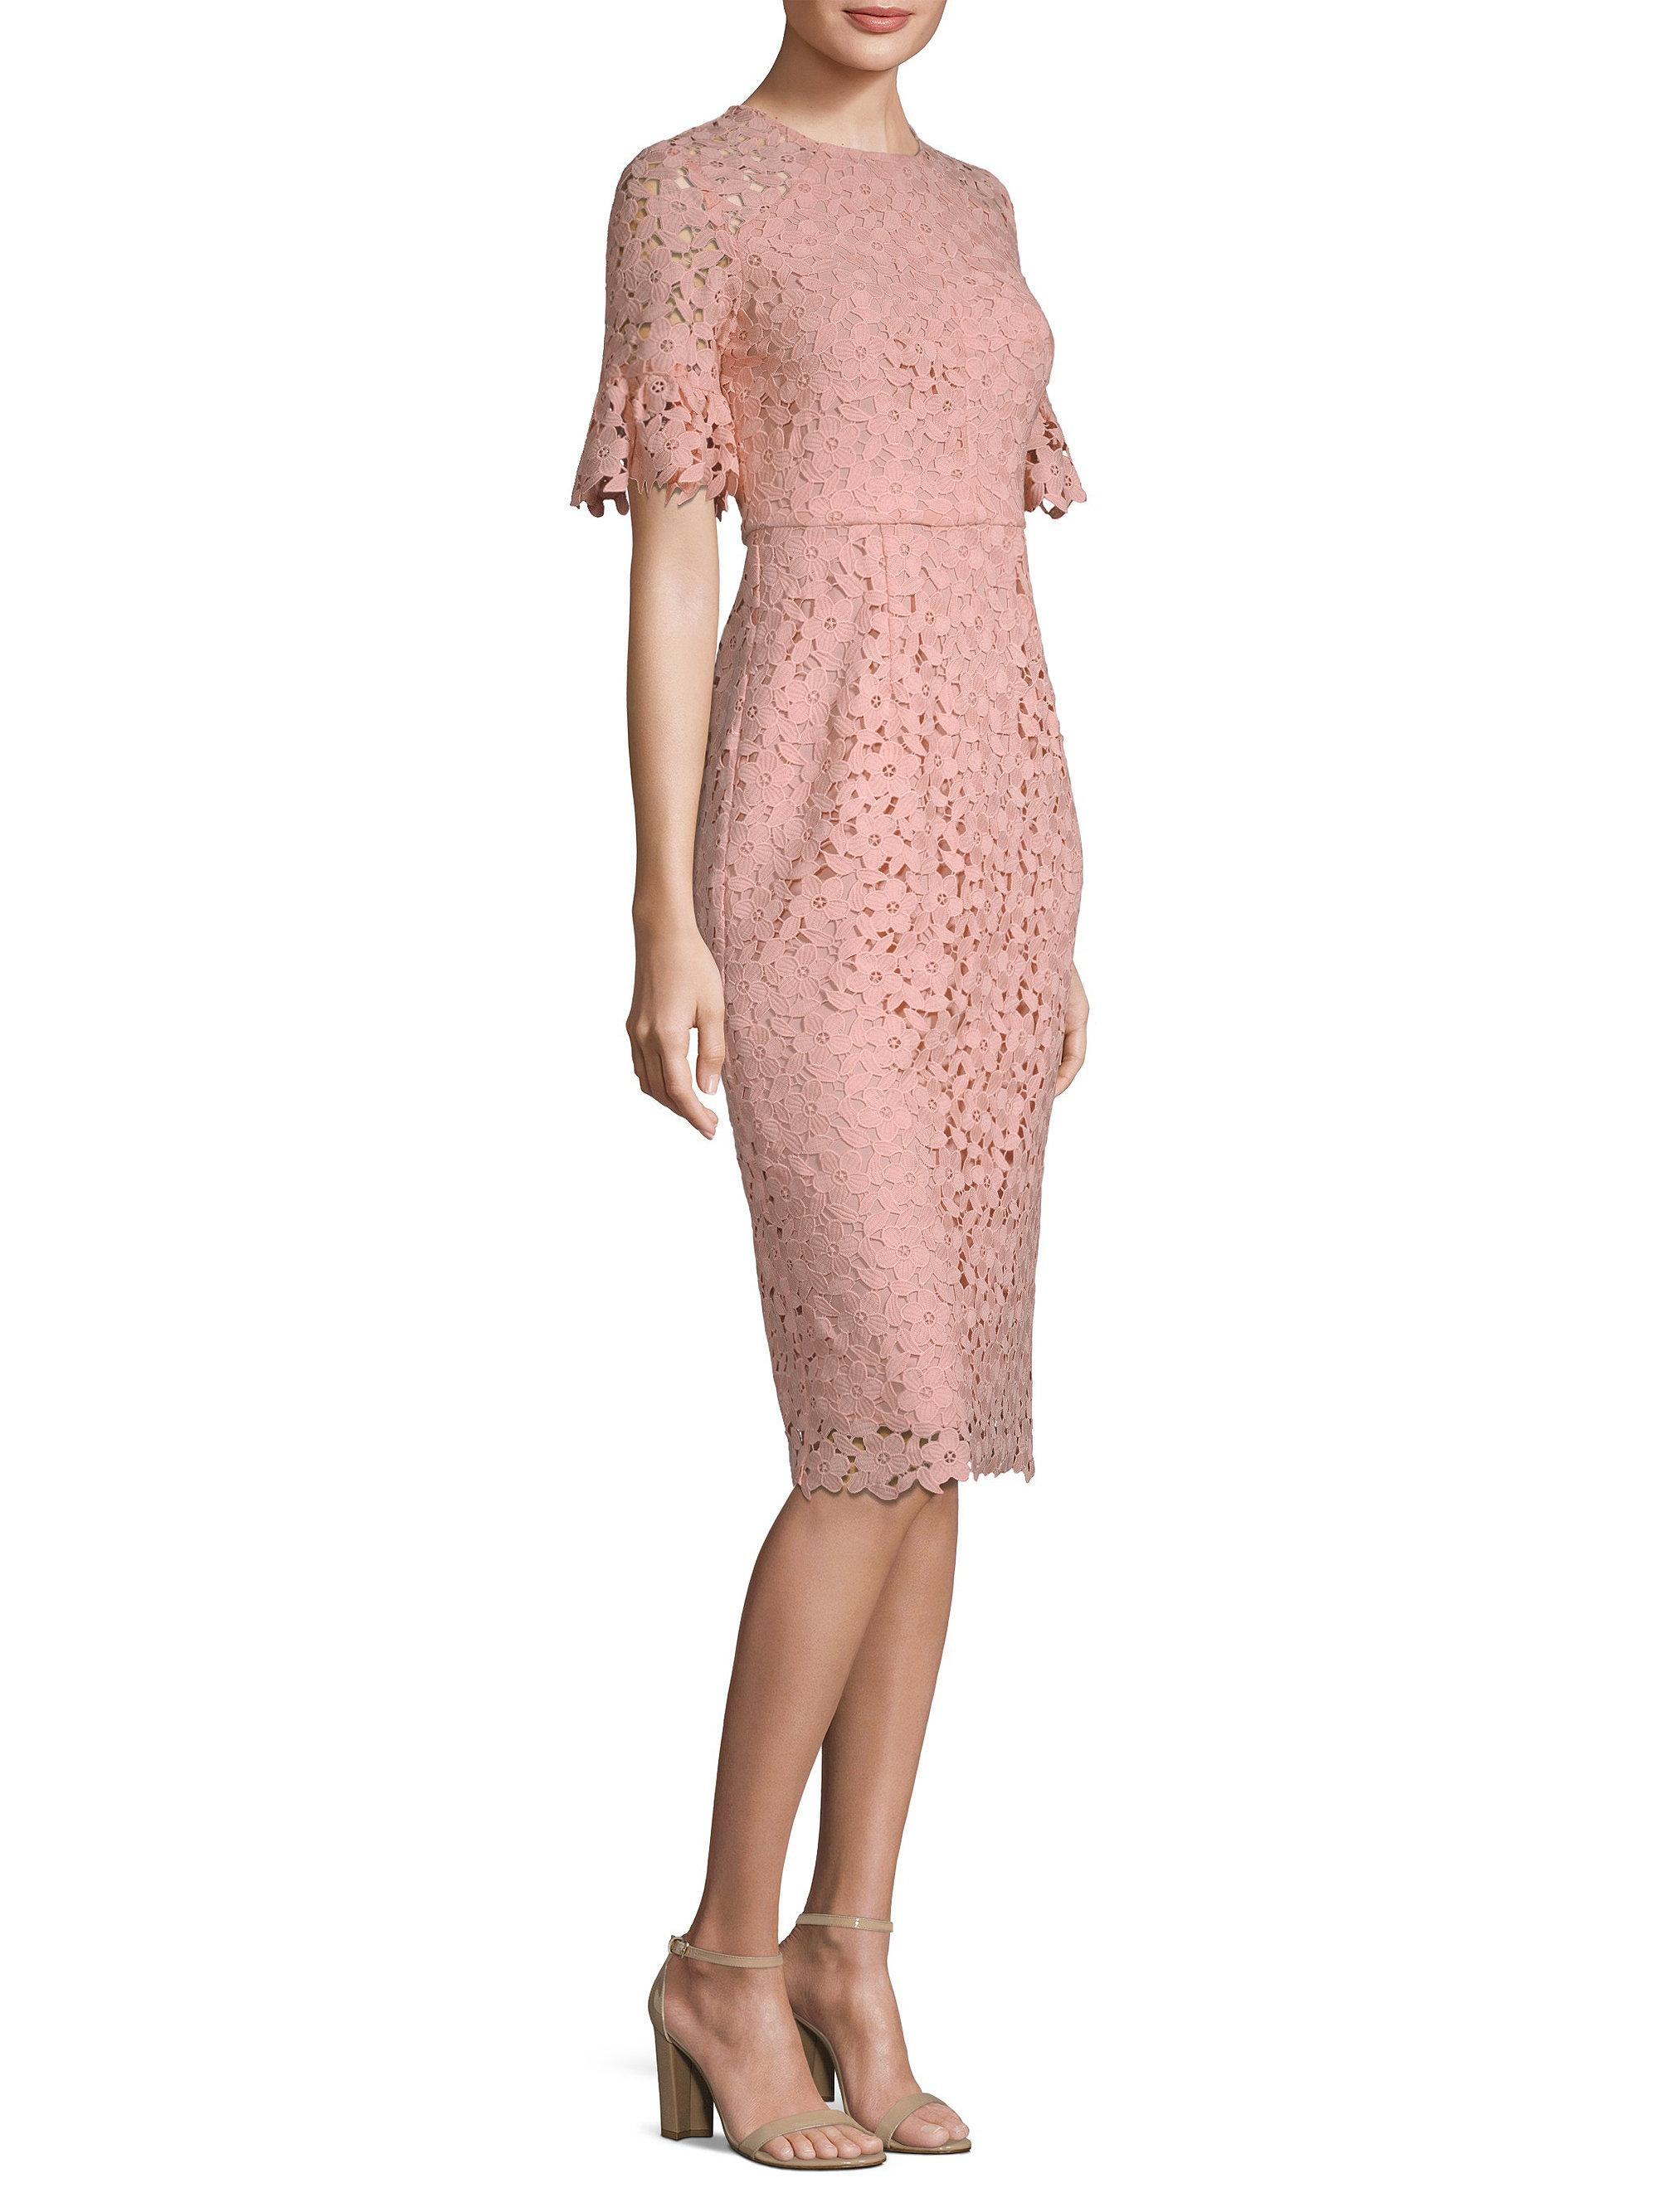 d6747837 Shoshanna Alberti Floral Lace Dress in Pink - Lyst